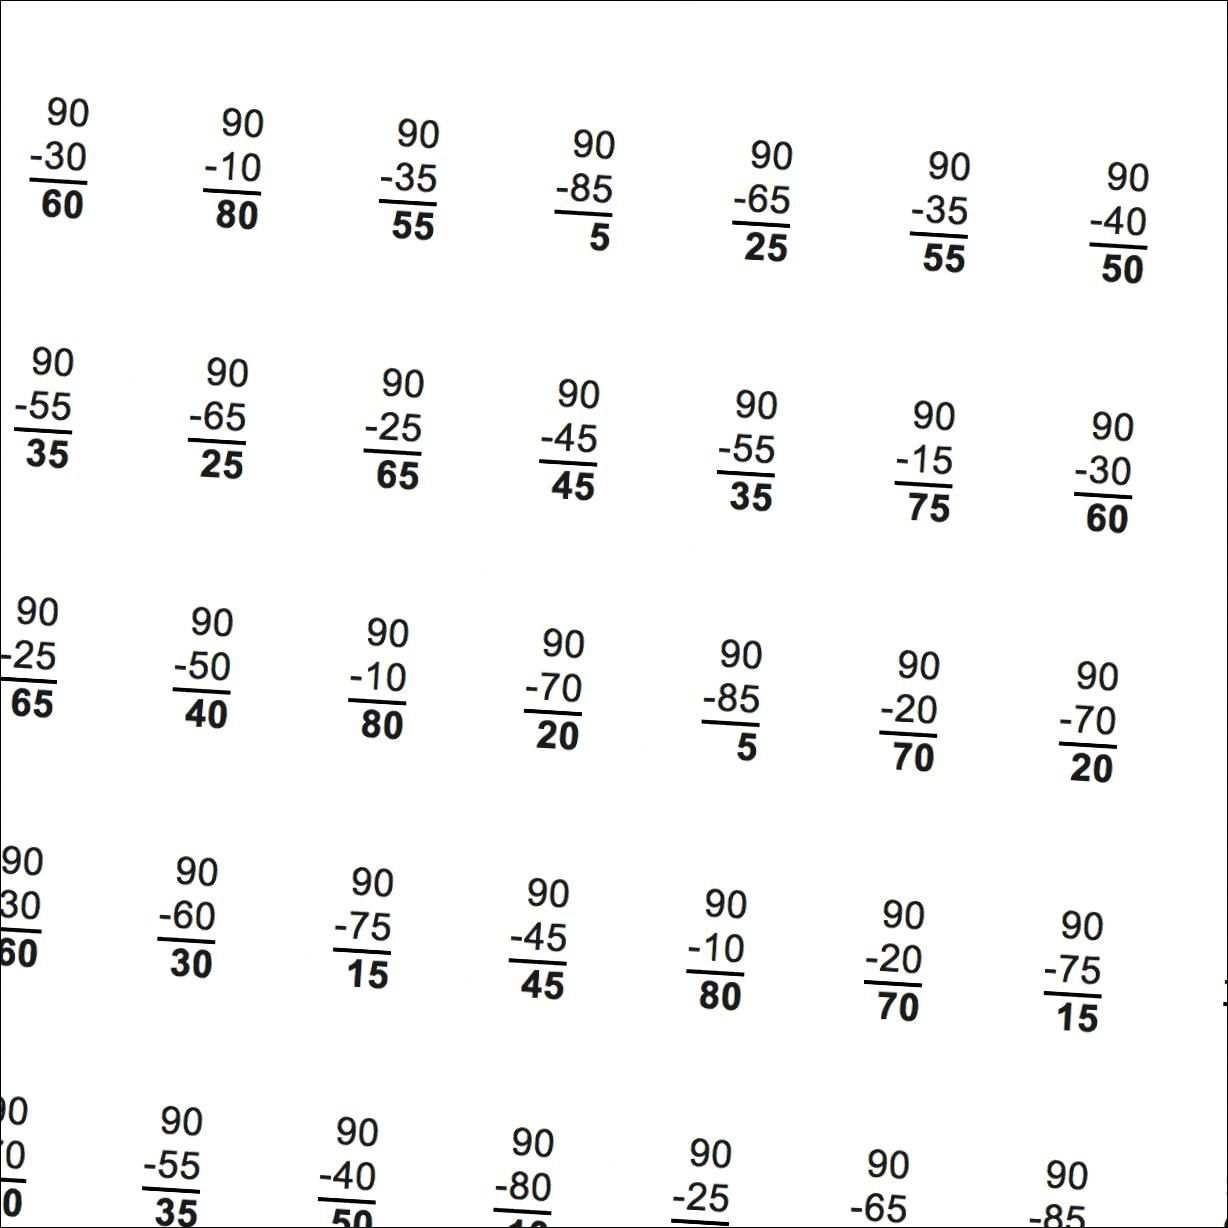 Worksheets Complementary Angles Worksheet subtraction worksheet practice for finding complementary angles whose sum is 90 degrees